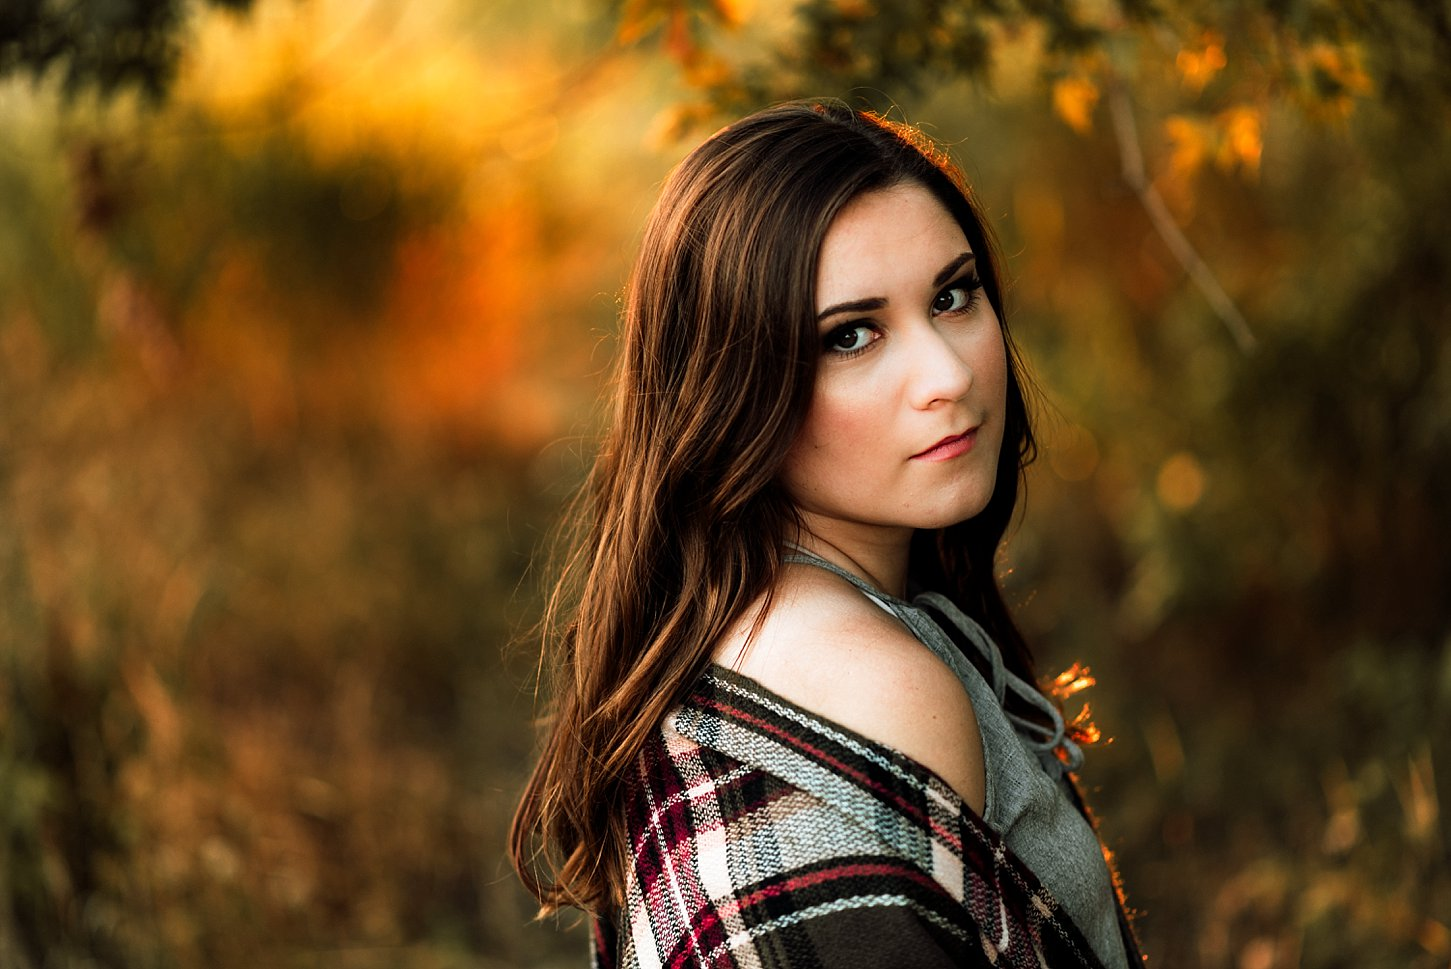 FINDING THE BEST LIGHT FOR PORTRAITS - Carlee Secor